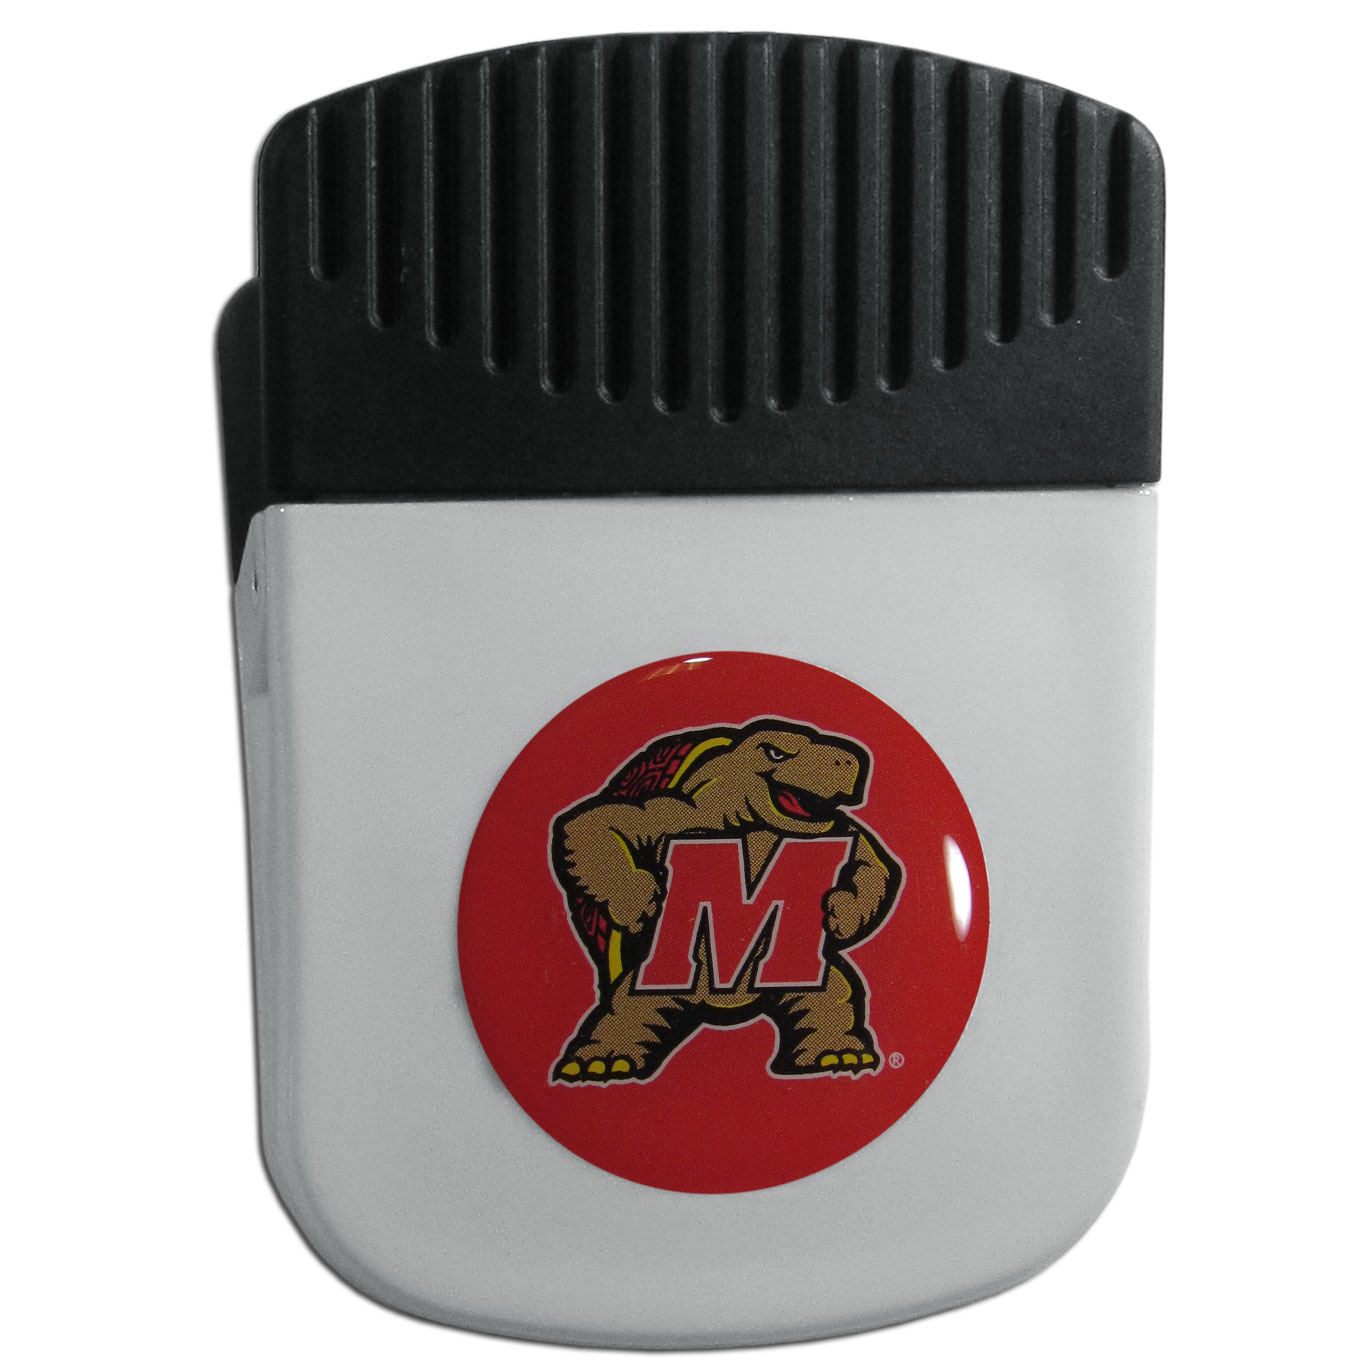 Maryland Terrapins Chip Clip Magnet - Use this attractive clip magnet to hold memos, photos or appointment cards on the fridge or take it down keep use it to clip bags shut. The magnet features a domed Maryland Terrapins logo.